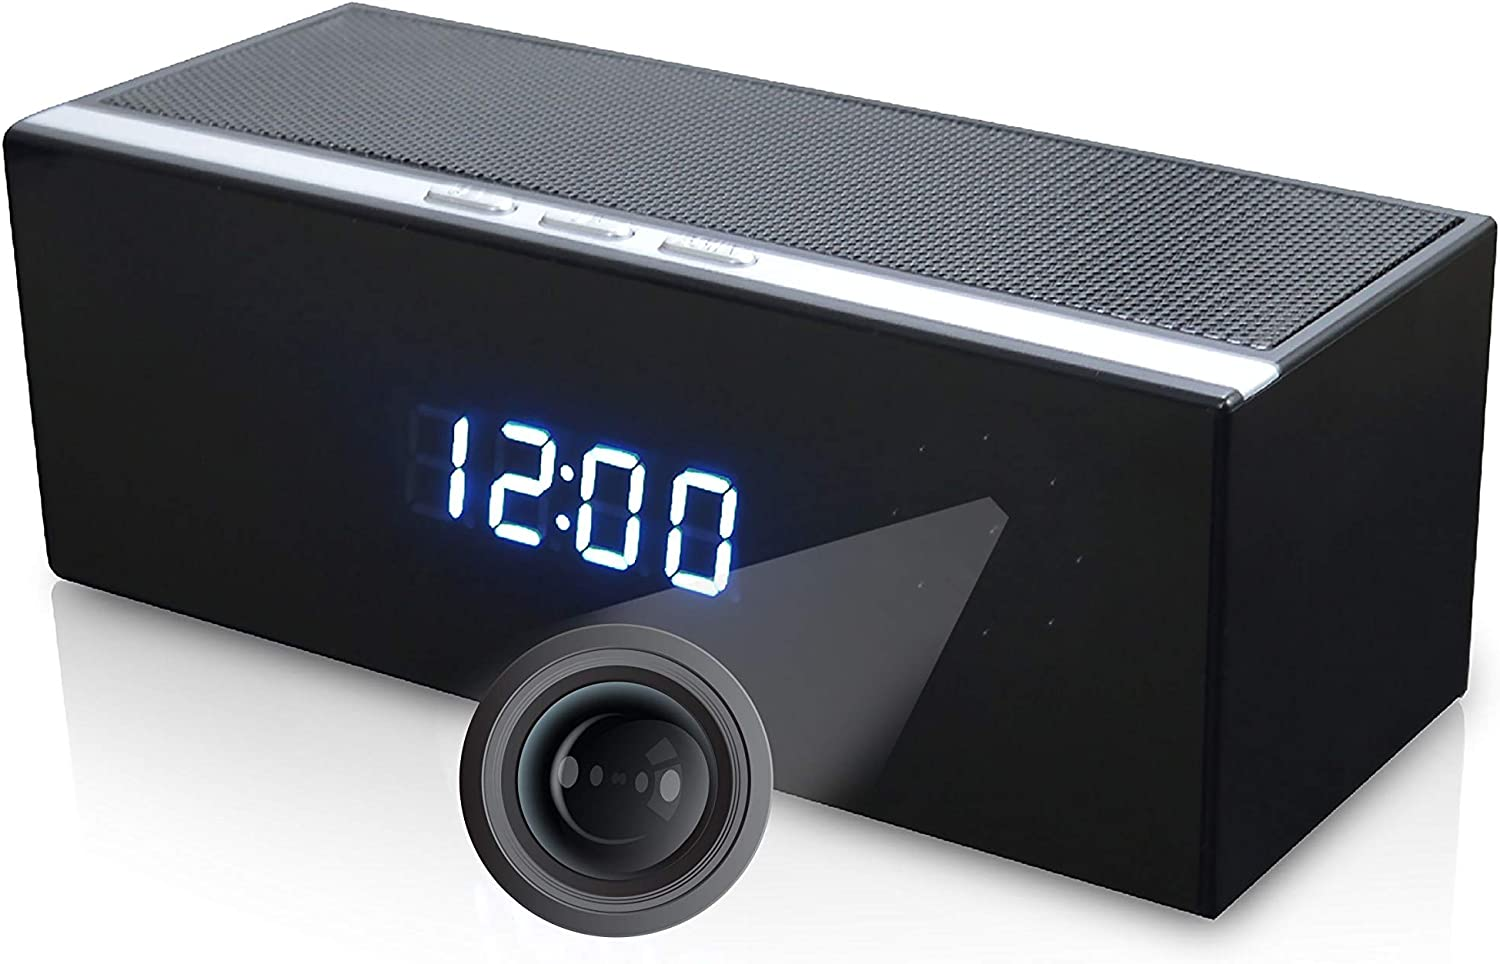 LizaTech Bluetooth Speaker Hidden IP Camera - 1080p Camera with Night Vision and Motion Detection 719Wolr7RZLSL1500_